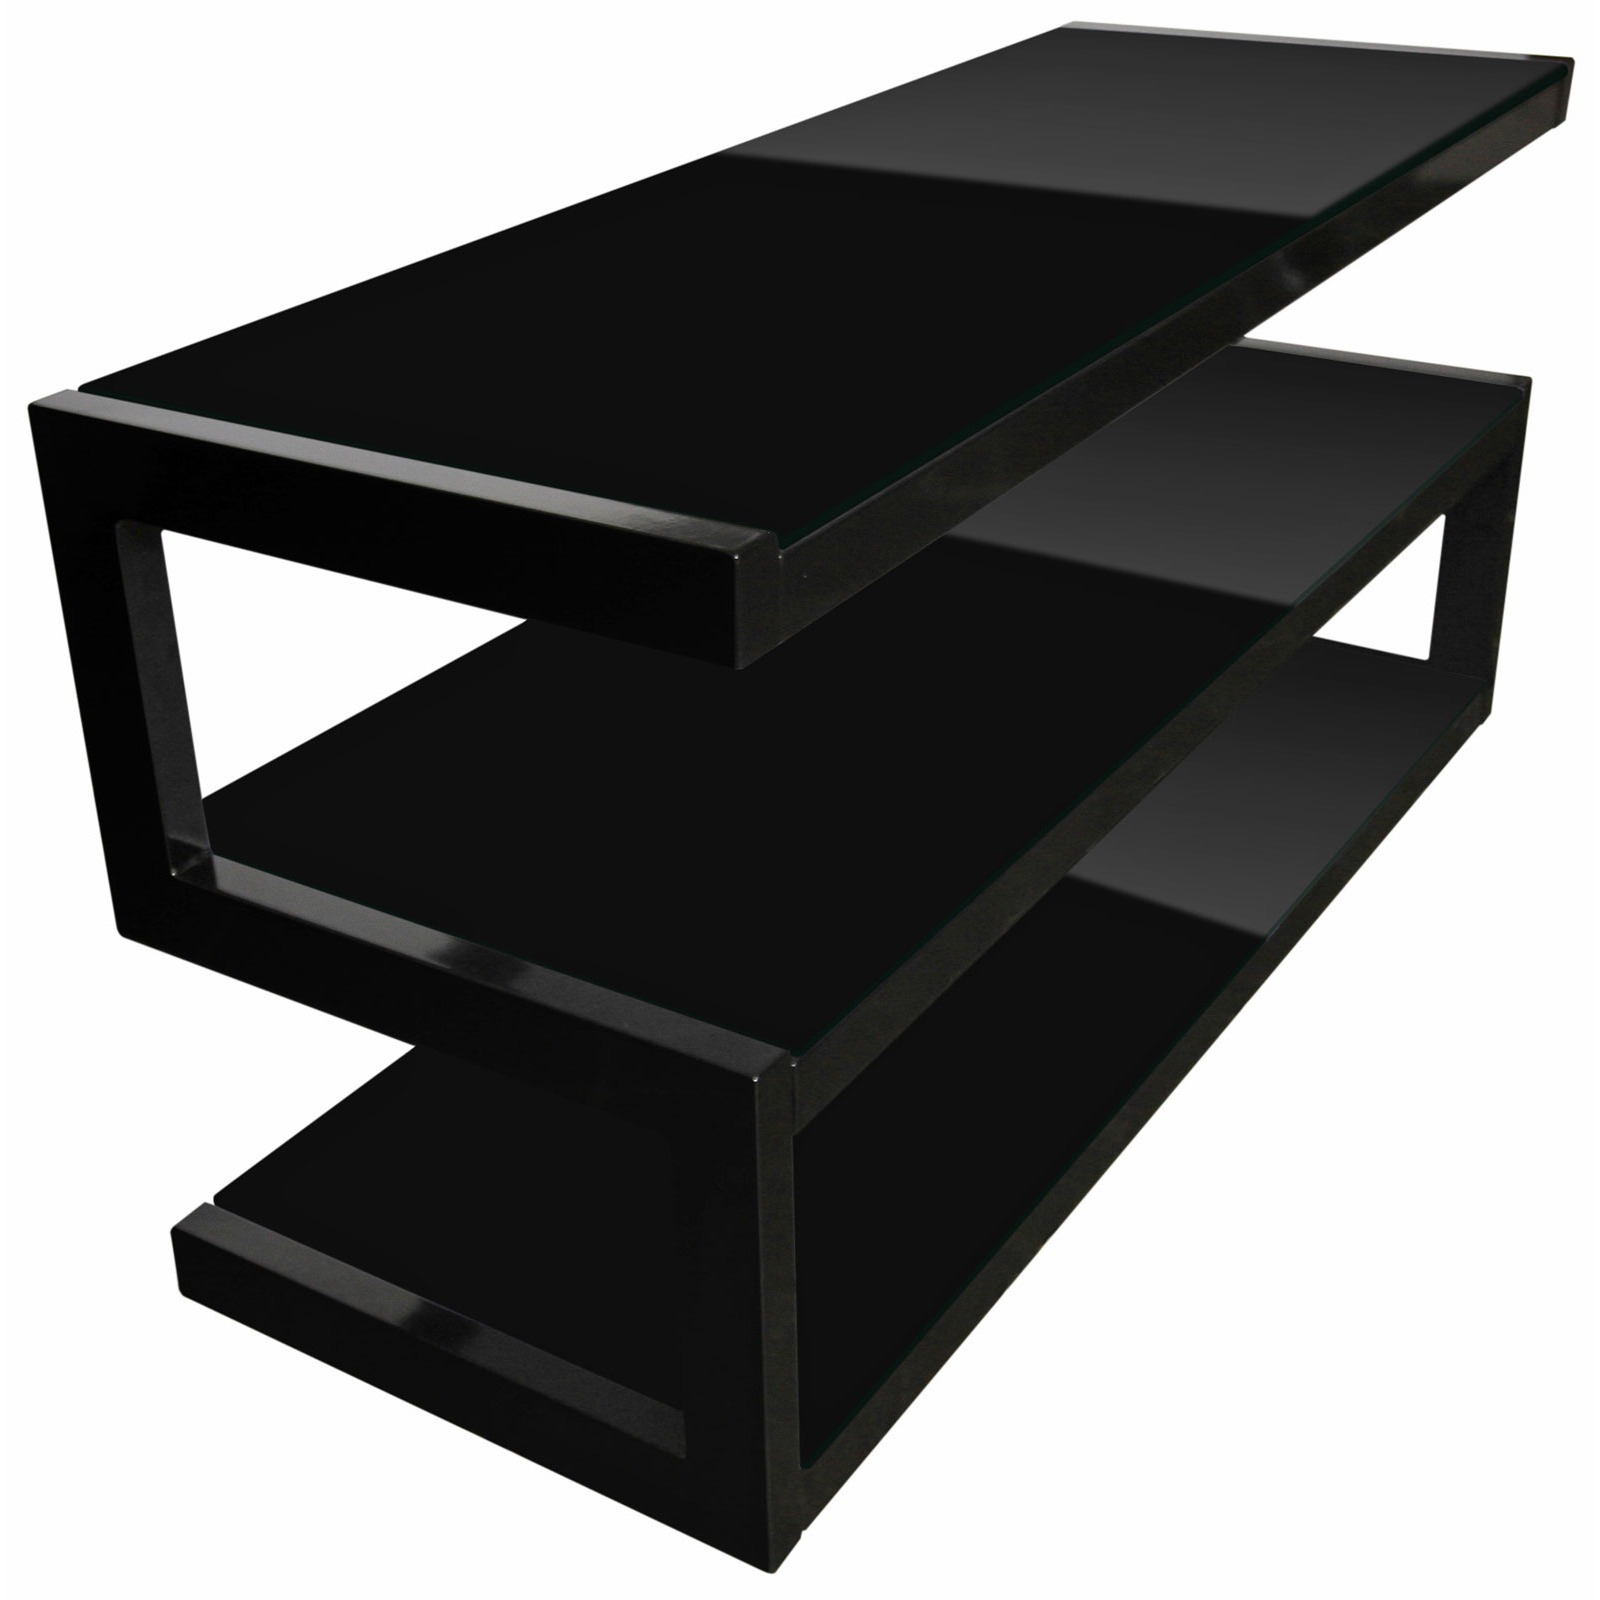 norstone esse mini meuble tv norstone sur. Black Bedroom Furniture Sets. Home Design Ideas